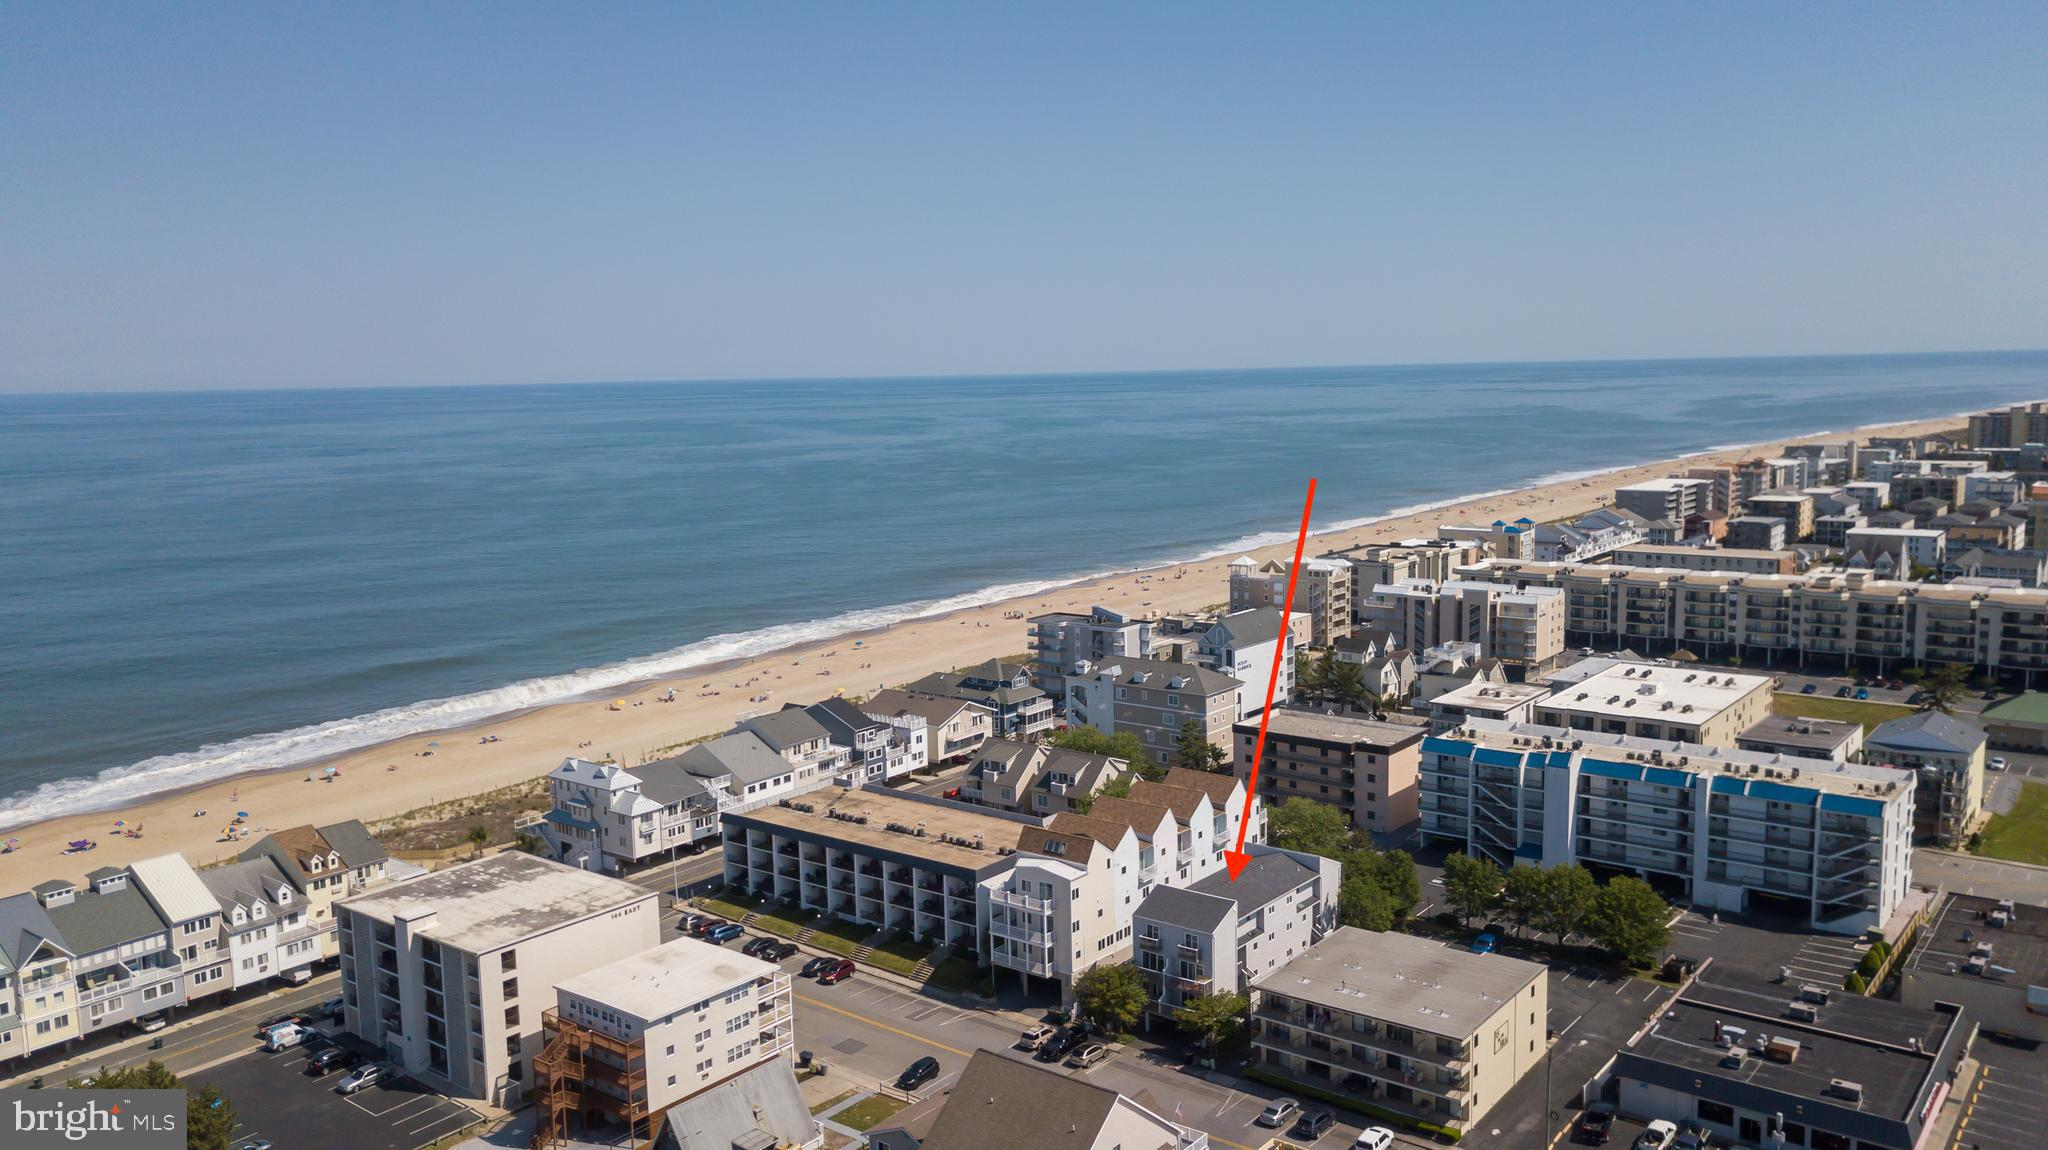 Enjoy a peek at the ocean from the generous balcony of this spacious ocean block condo located in North Ocean City just 2-blocks from the MD/DE line. The unit features open concept living with a kitchen peninsula for storage, dining area, living room, full vanity in the bath and a roomy bedroom. Ample opportunity for you to design your very own beach retreat. Well maintained building and great association. Parking includes 1 assigned space under the building and 1 additional assigned space that is shared on a first come first serve basis with another unit. Located close to restaurants, mini-golf, shopping, movie theater and Famous Fisher's Popcorn.